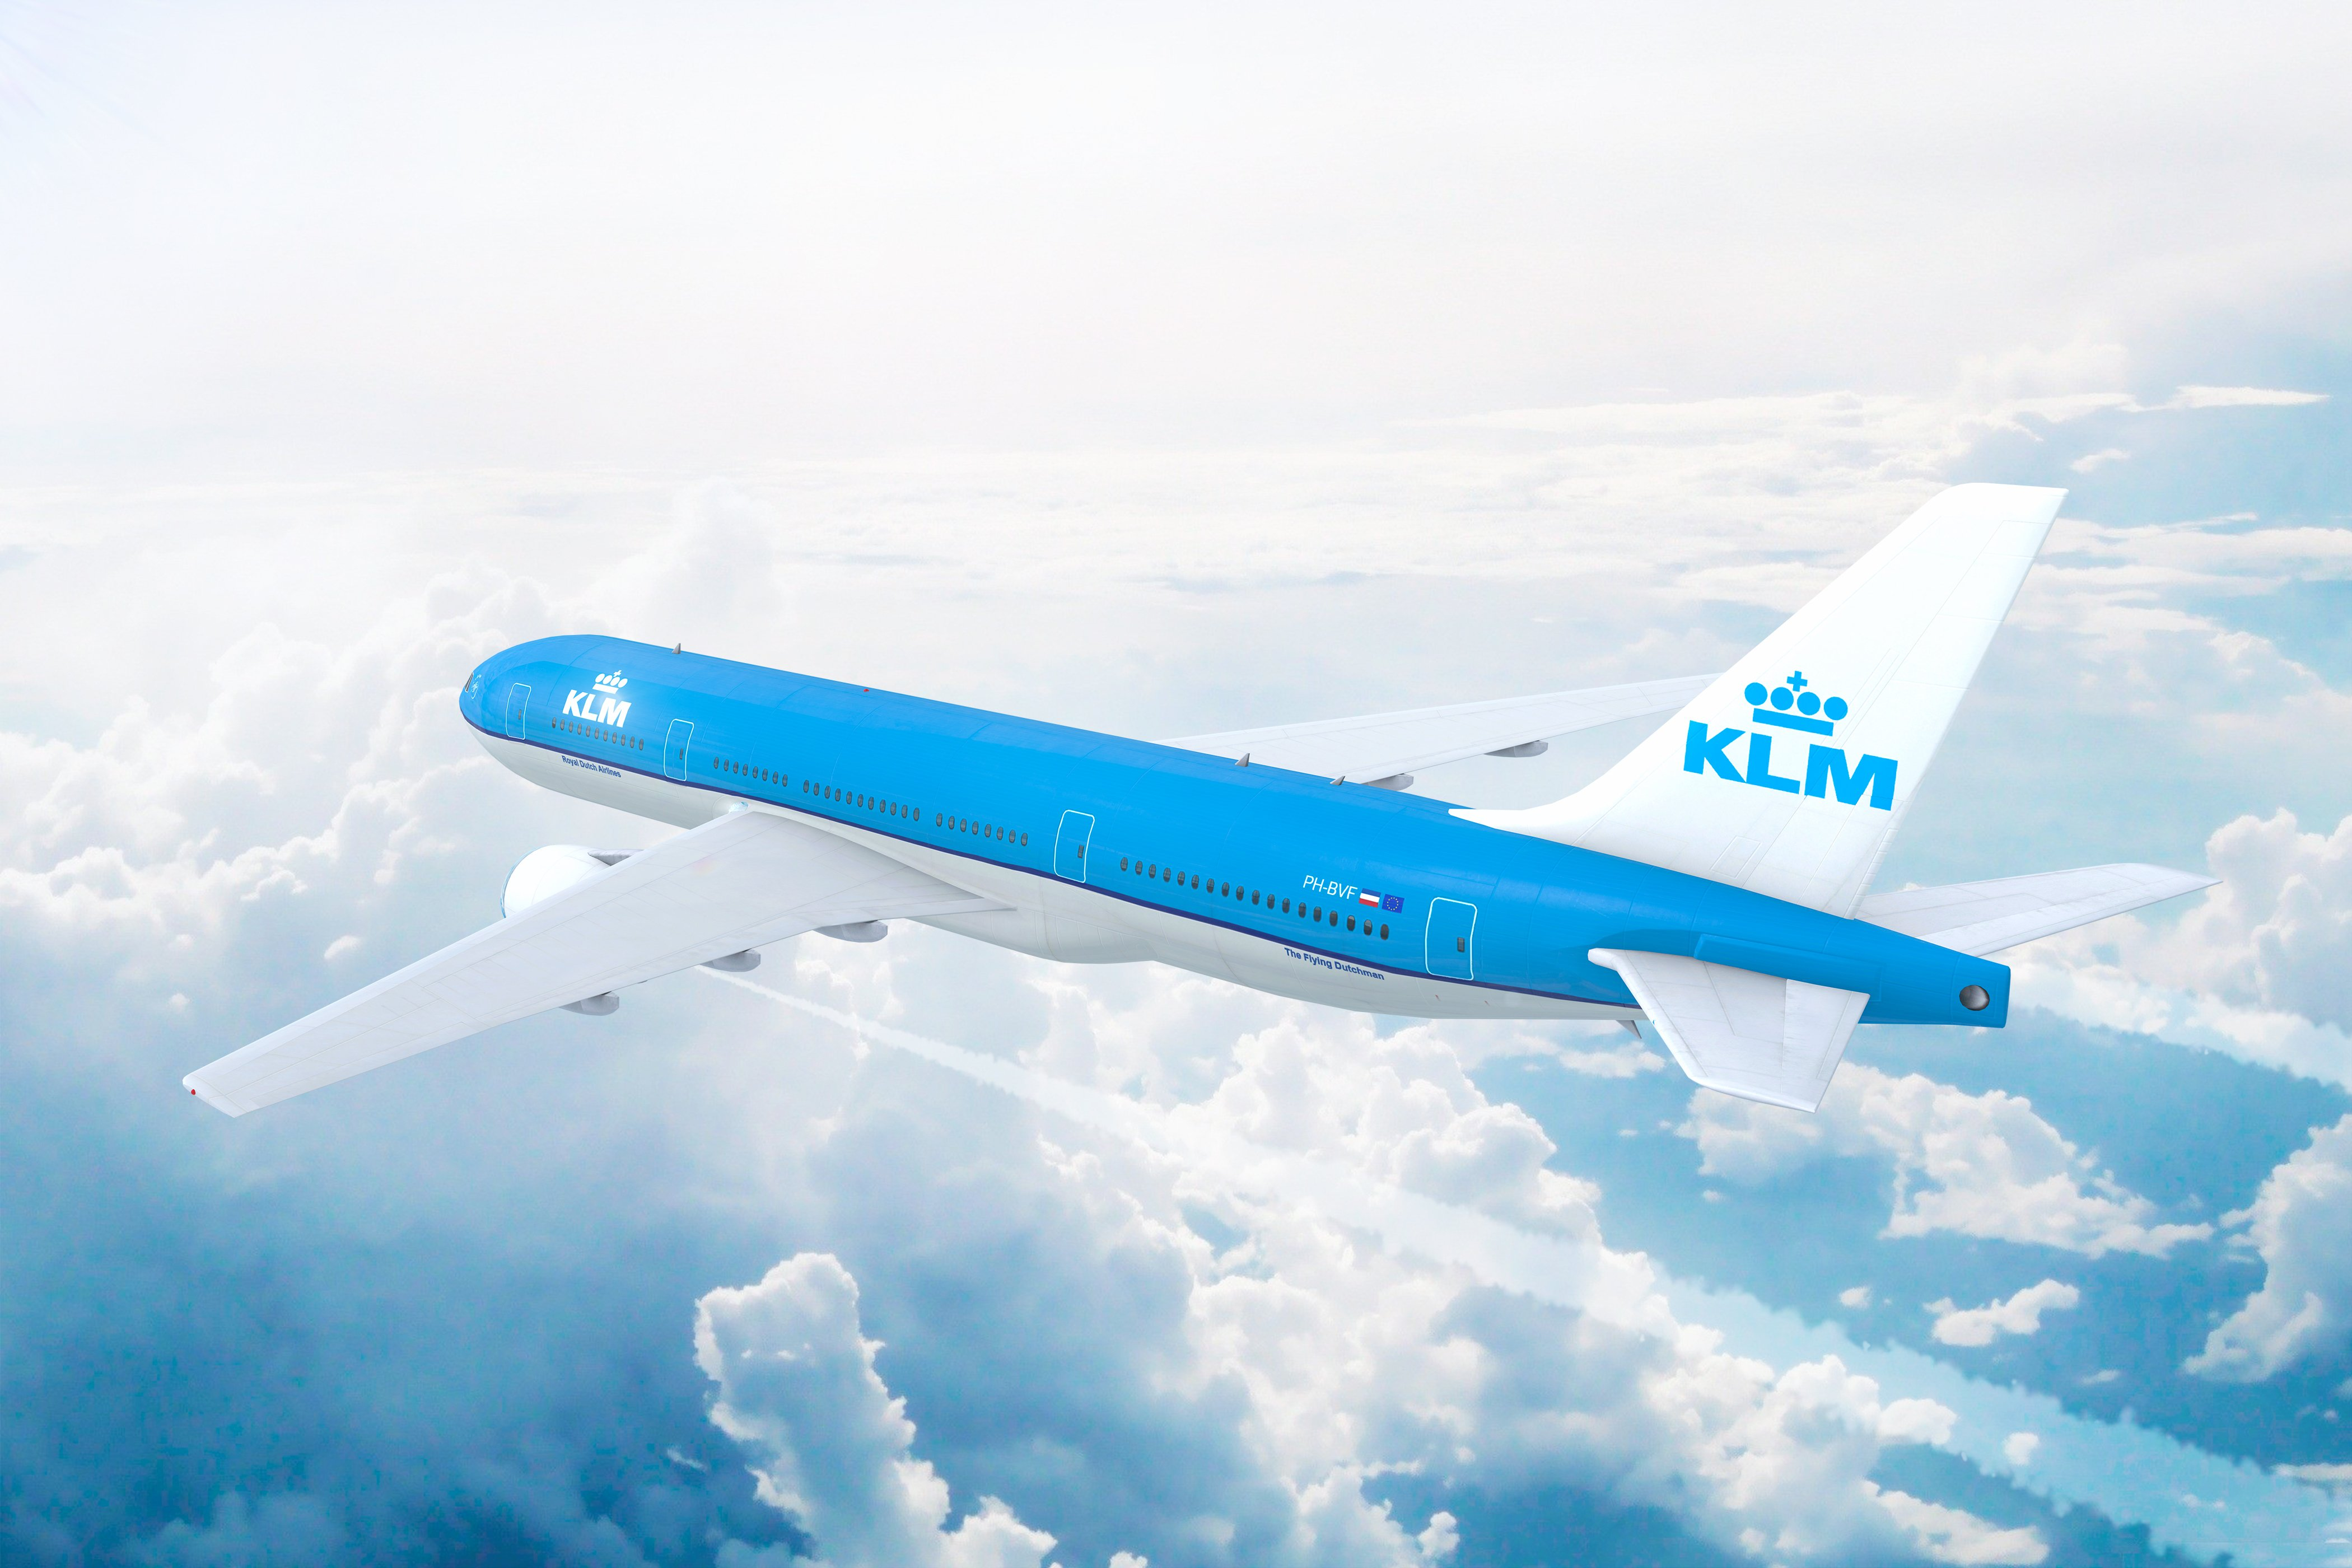 Aerial view of KLM Royal Dutch Airlines | Image: Shutterstock